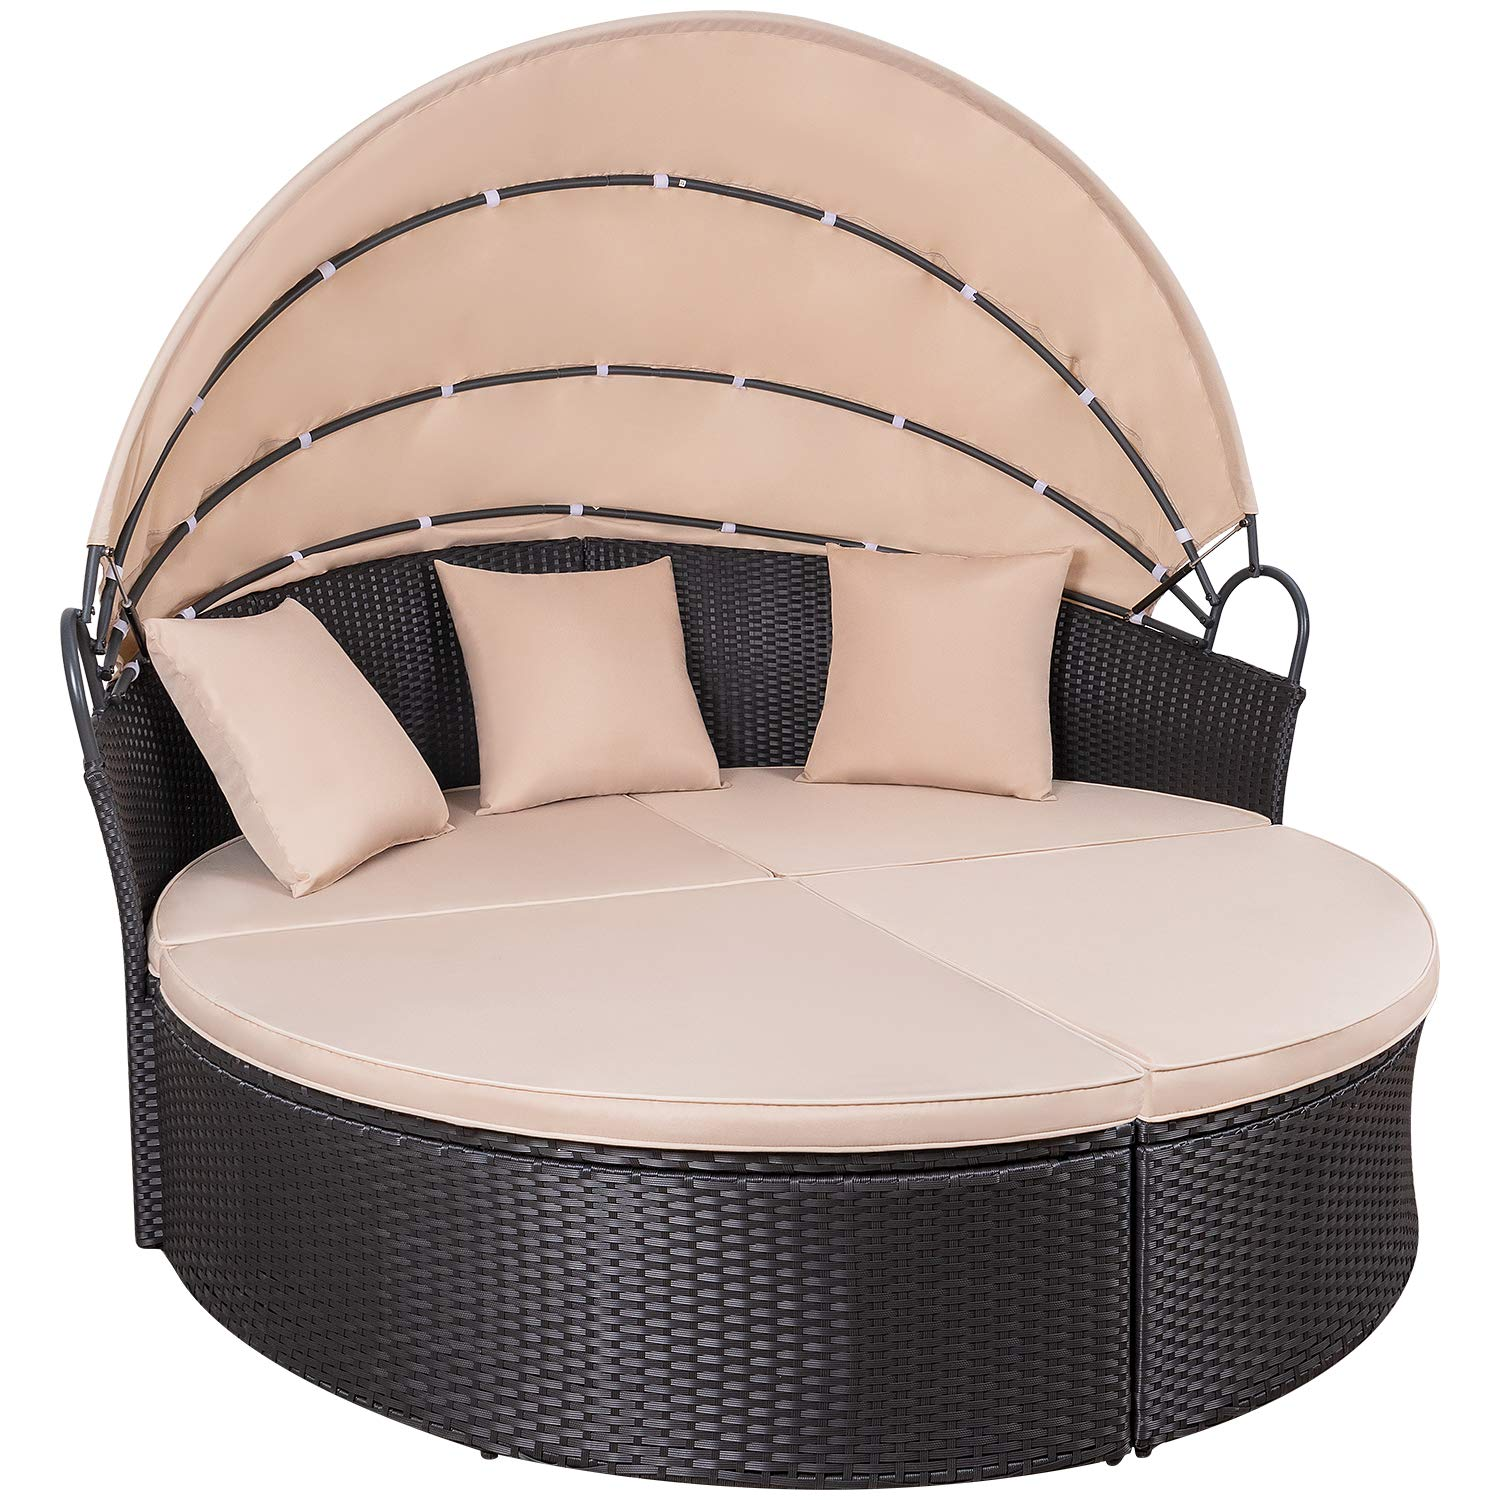 KaiMeng Patio Sets Outdoor Round Daybed with Retractable Canopy PE Rattan Wicker Furniture with Cushion and Pillows Detachable for Patio Garden Backyard Pool (Black) by KaiMeng